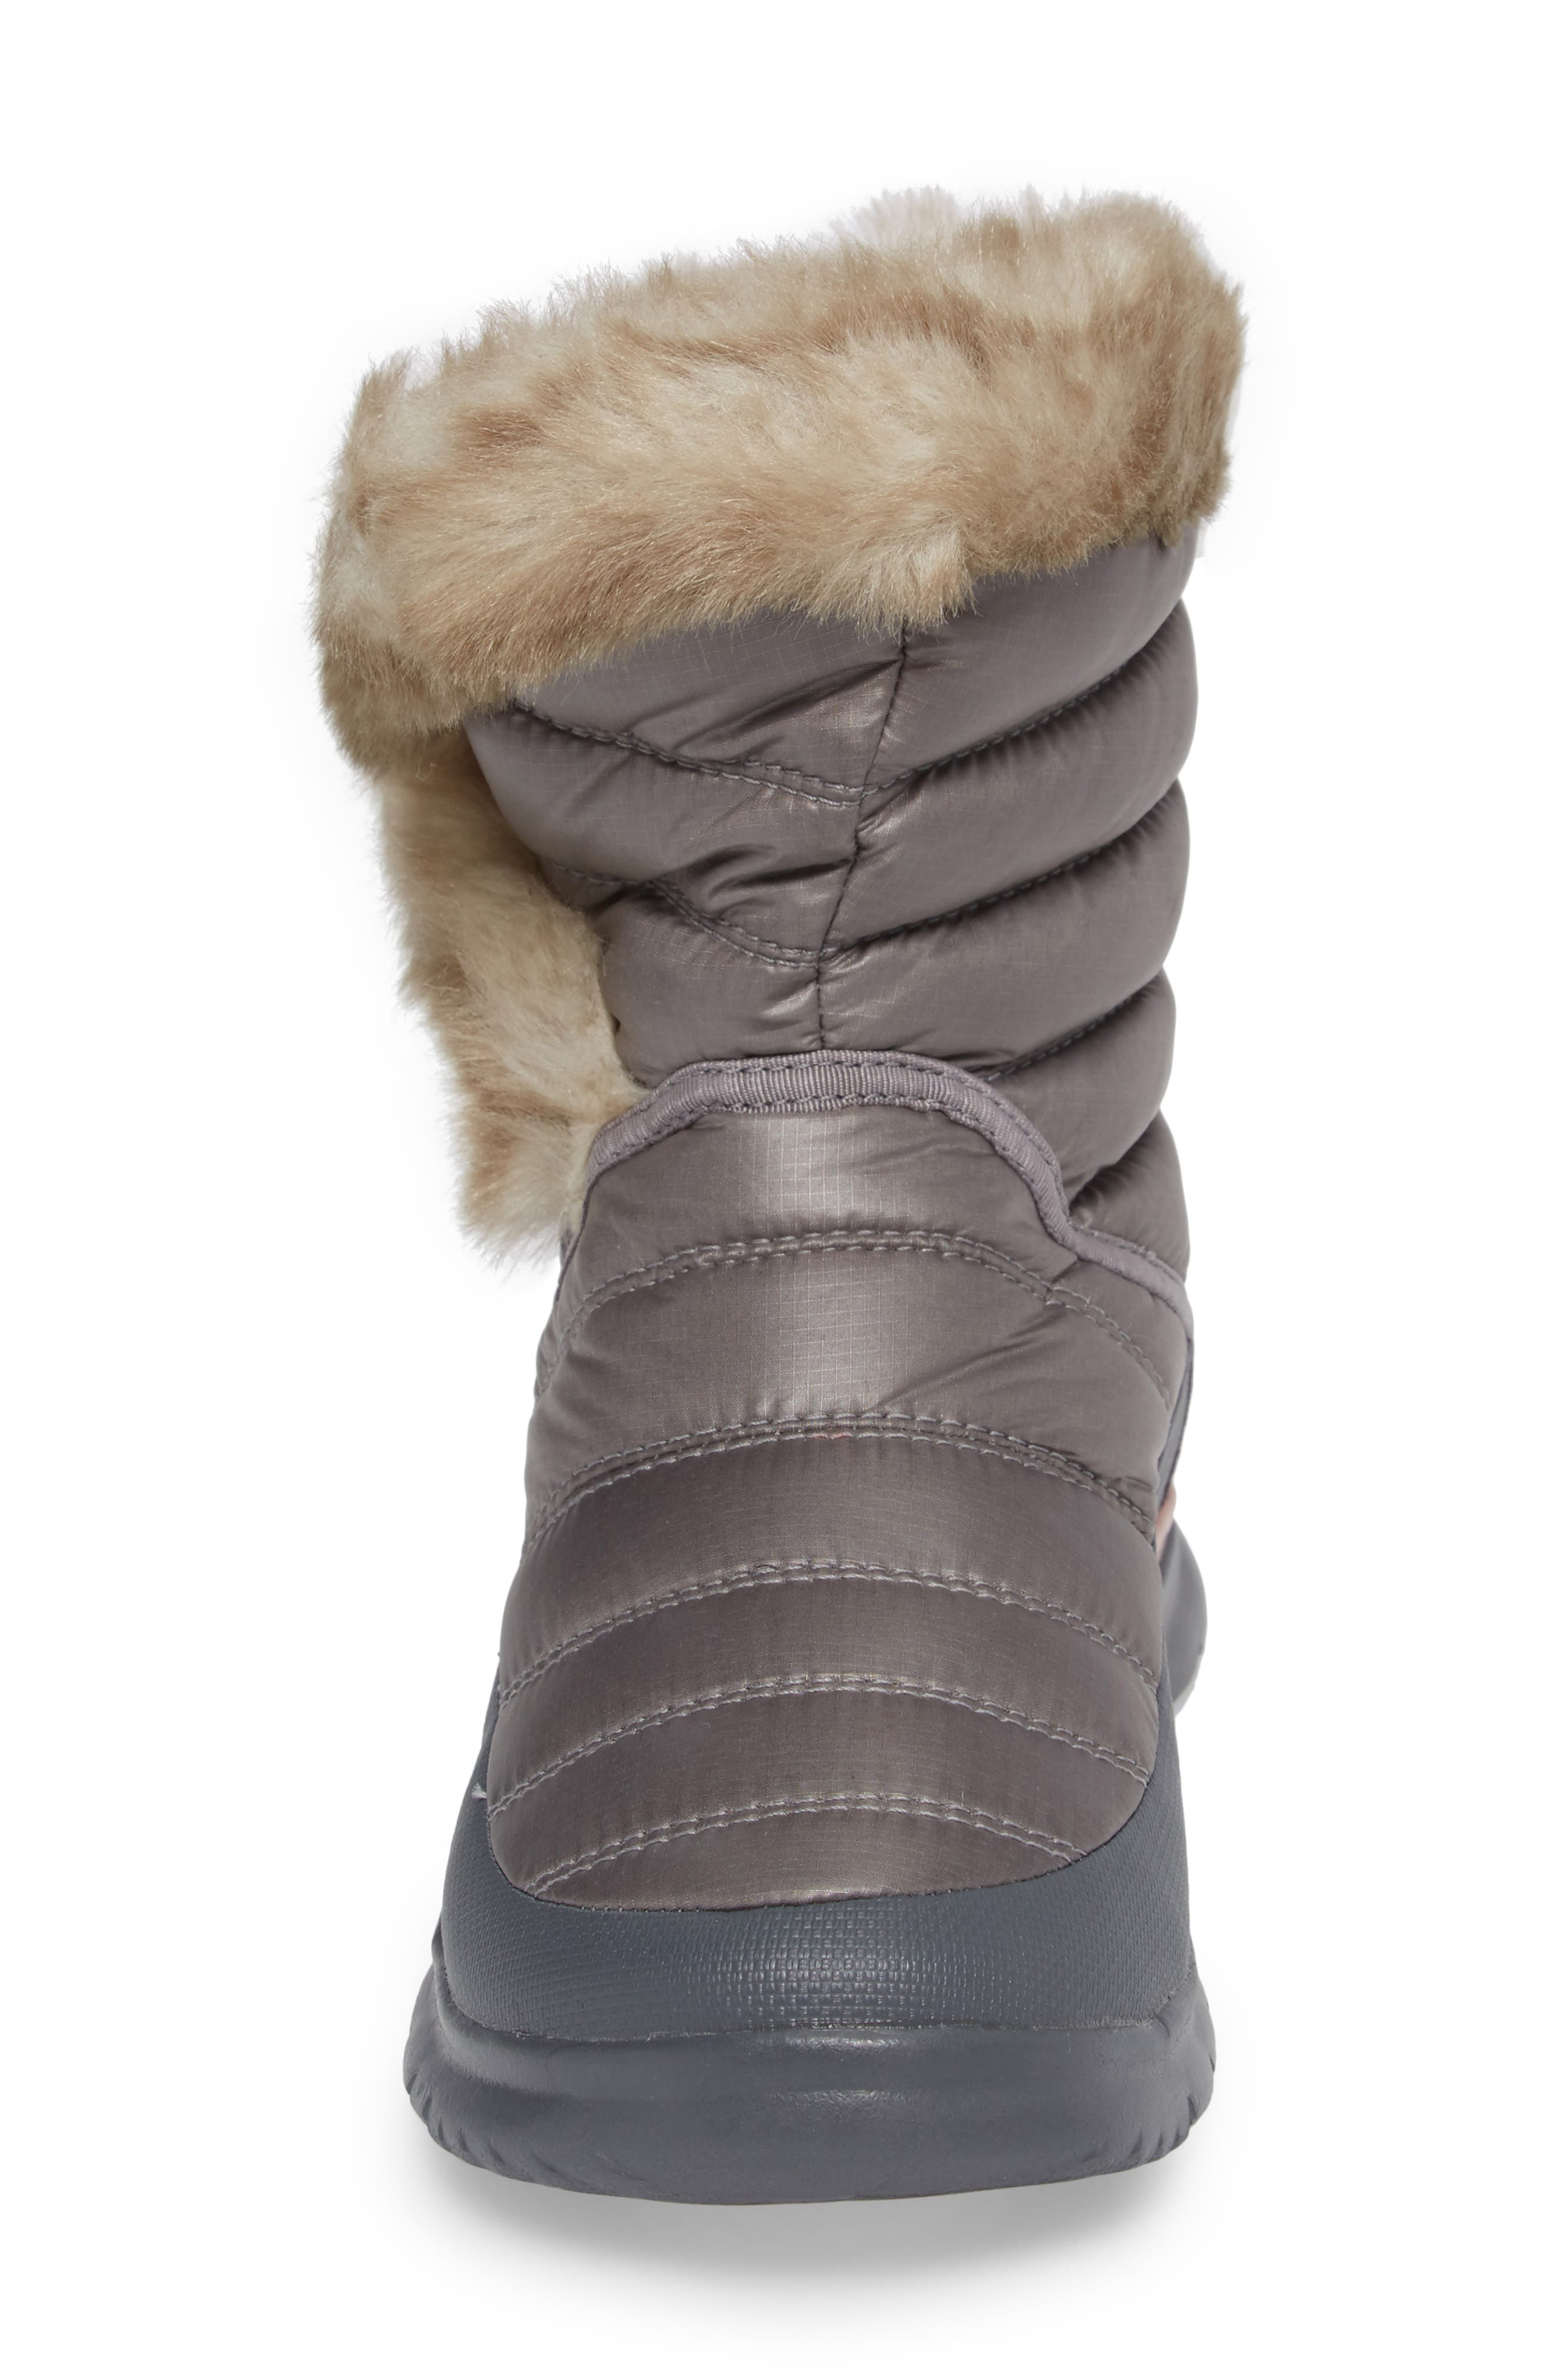 THE NORTH FACE,                             Microbaffle Waterproof ThermoBall<sup>™</sup> Insulated Winter Boot,                             Alternate thumbnail 4, color,                             021